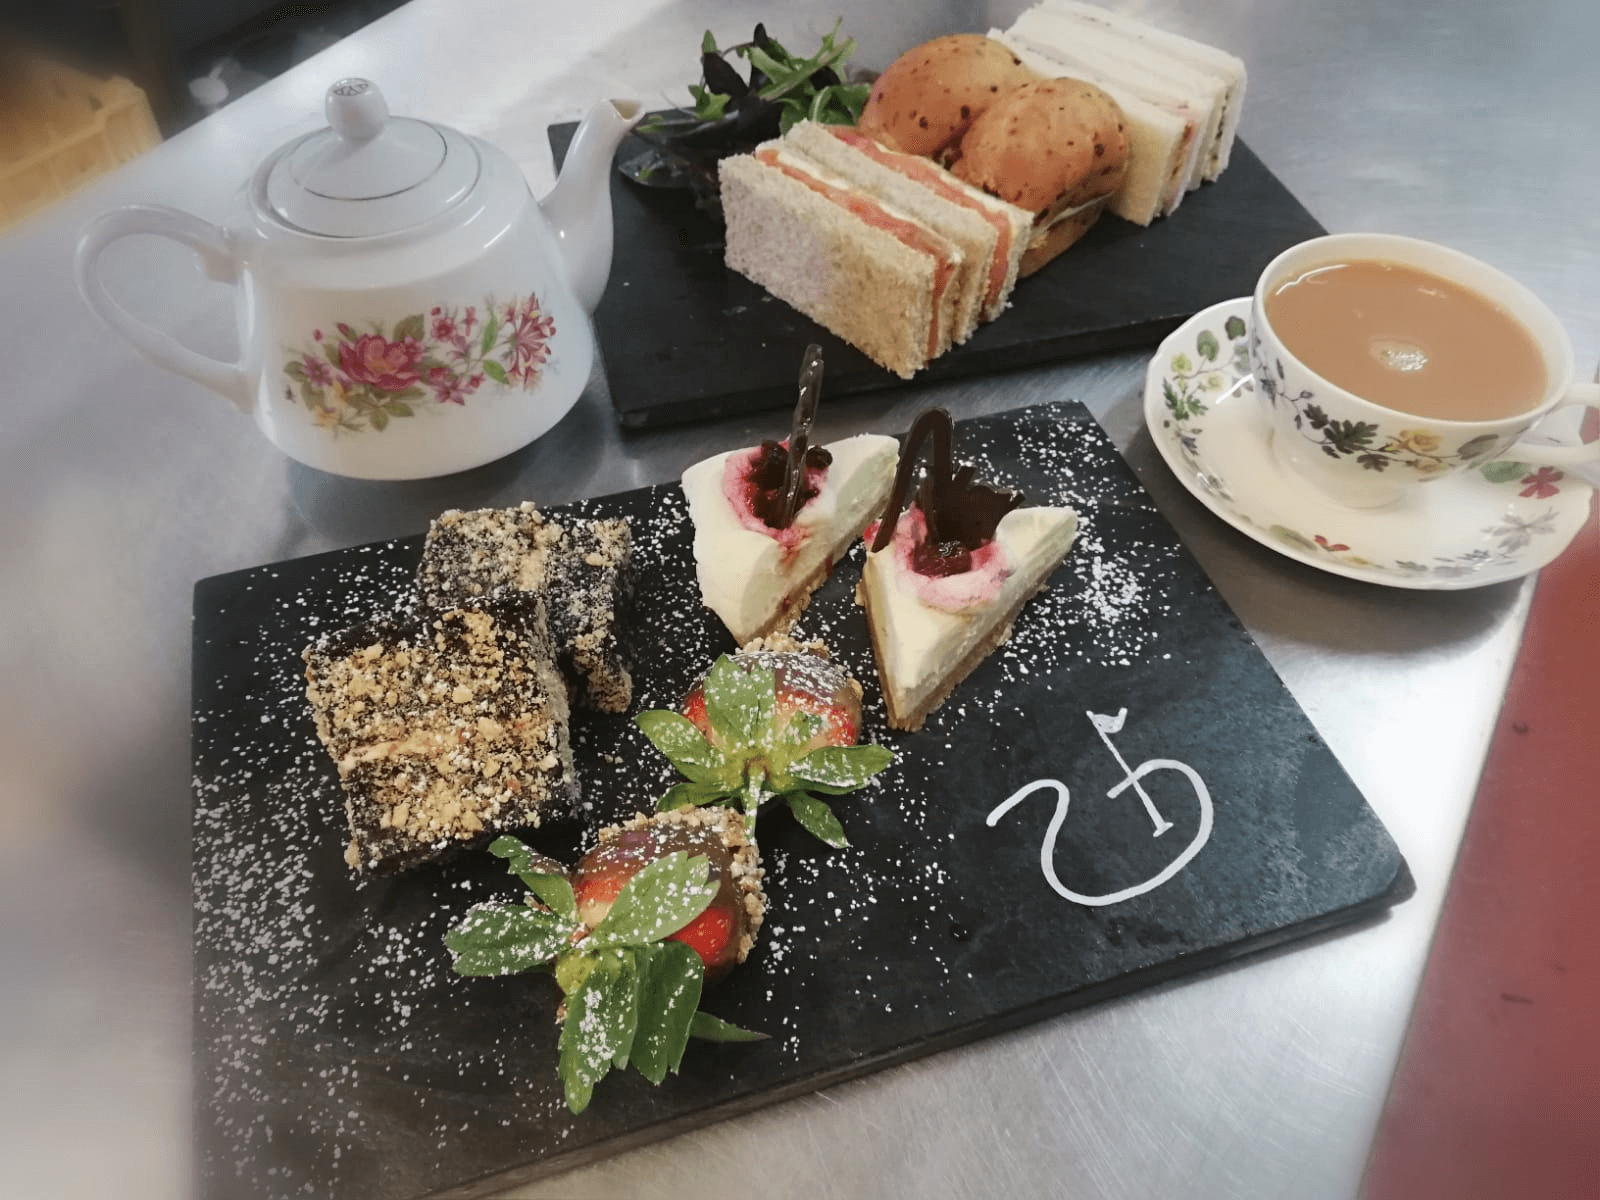 Toft afternoon tea